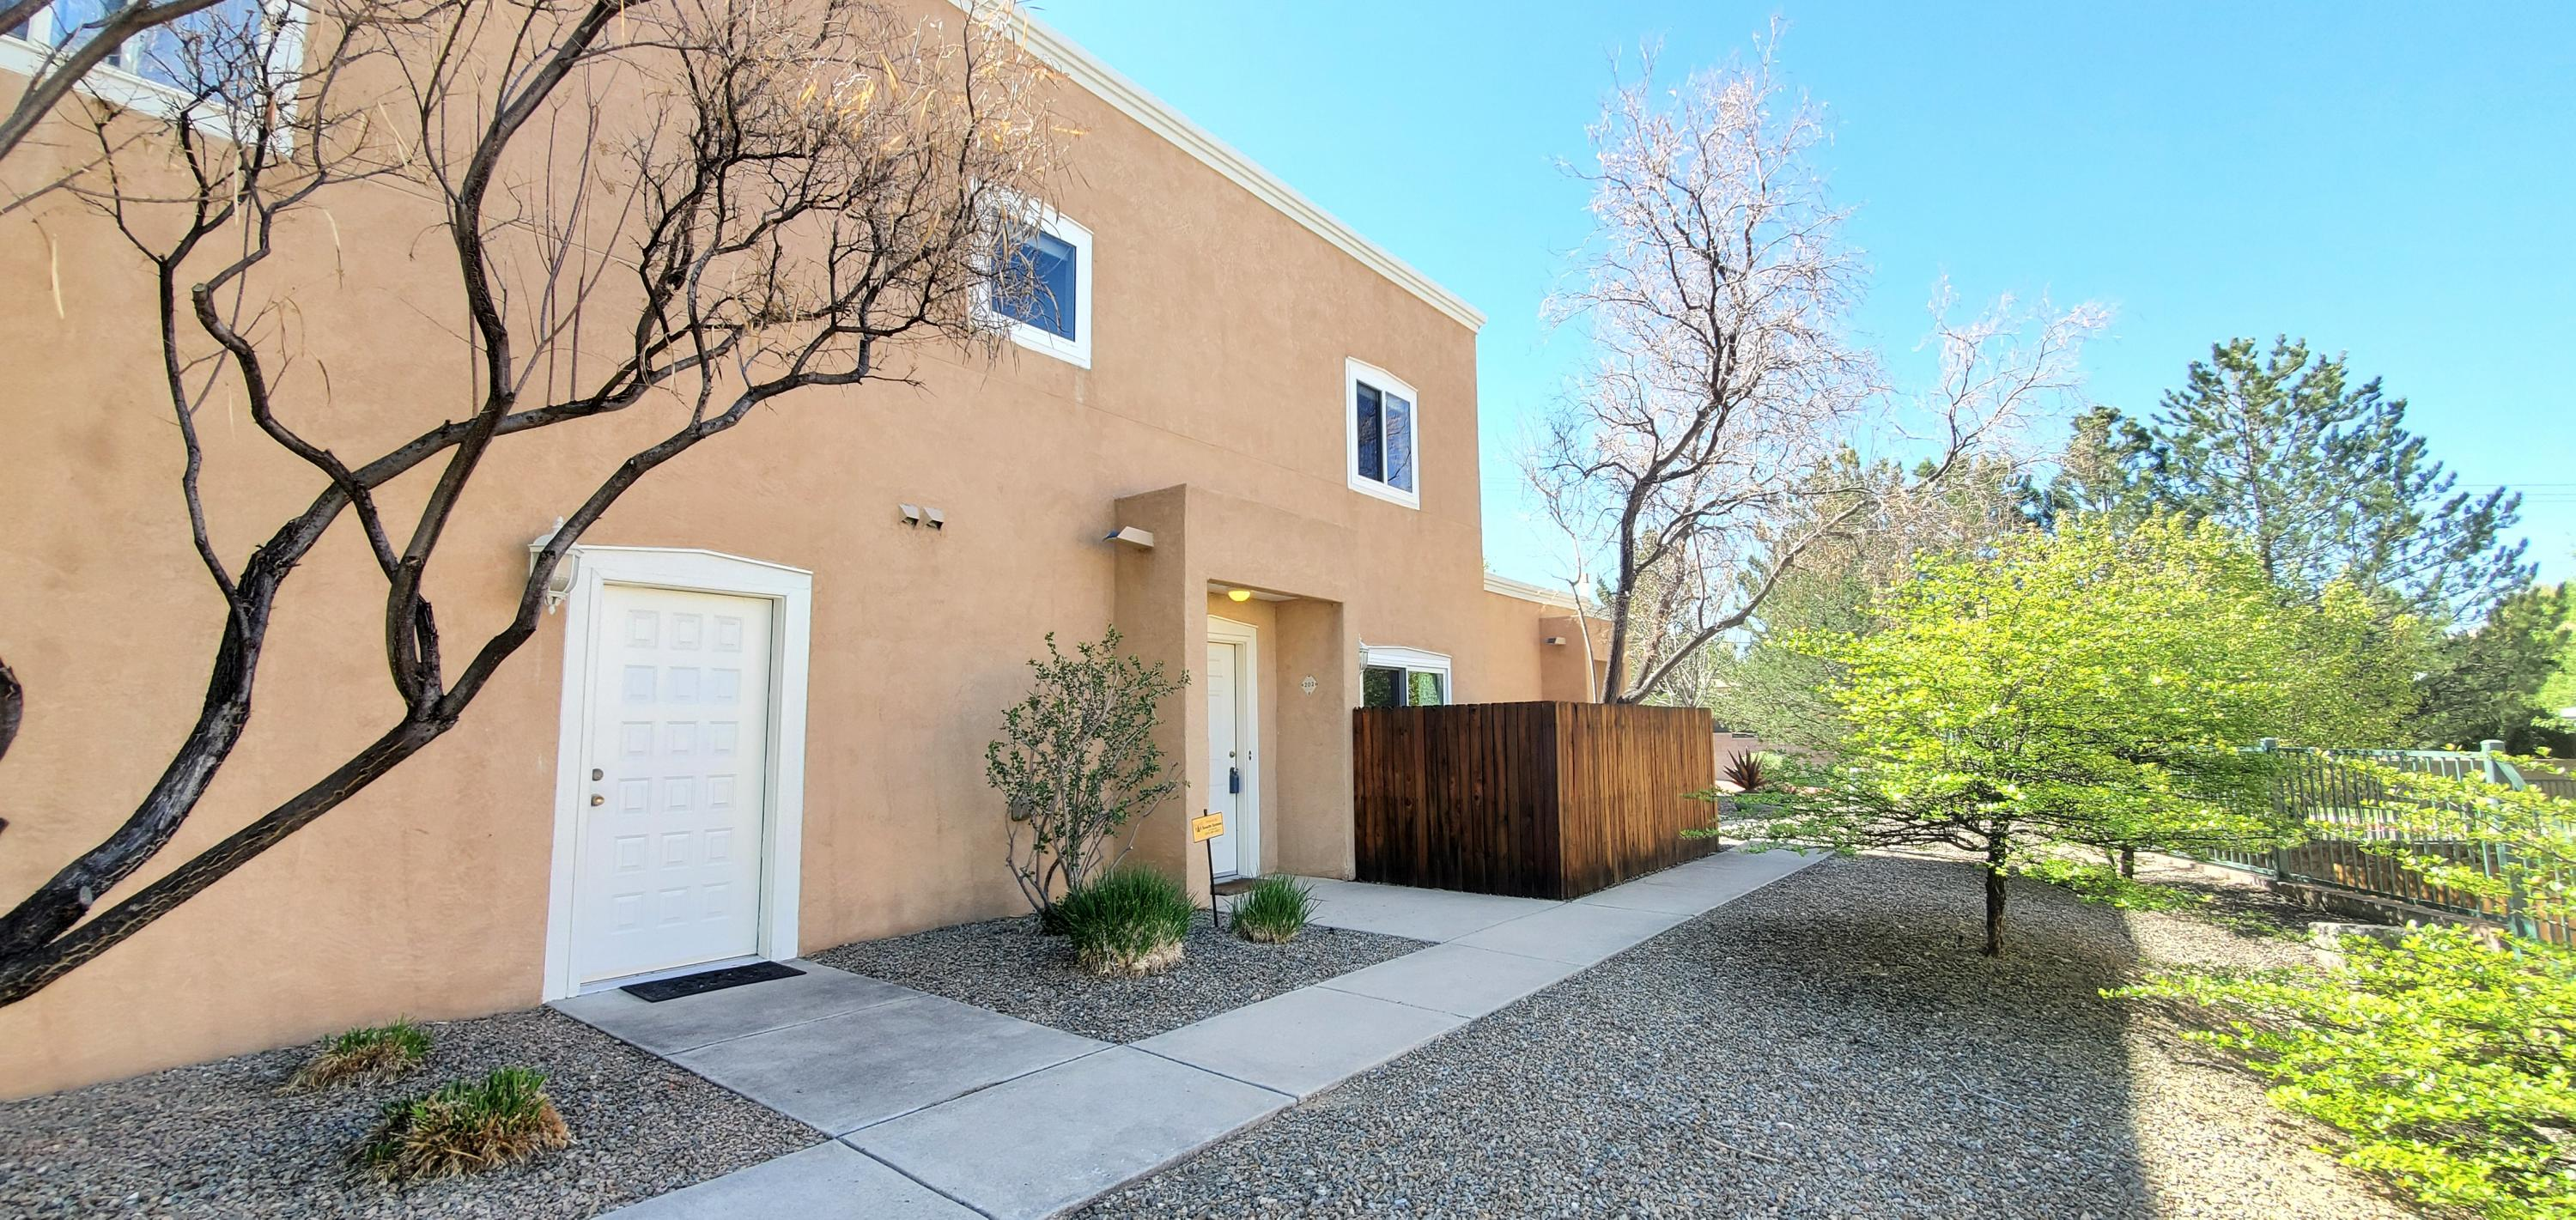 This is a great condo in the gated Oso Park neighborhood. It has a nice open concept with 2 bedrooms and 2 bathrooms. The Kitchen has been Completely Updated with custom cabinets, granite countertops, s/s appliances including a wine refrigerator. ($40K) All the windows have been replaced ($10K).  Units is very quite and shows as new with plenty of upgrades and care. Refrigerated Air($20K), Tile Floors, and the living room has surround with inwall speakers ($10K) and is open with a sliding patio door to an outdoor patio. Master Bathroom is remodeled as well with Jetted tub and full enclosure.(part of the $40k). You won't be dissappointed in this unit.